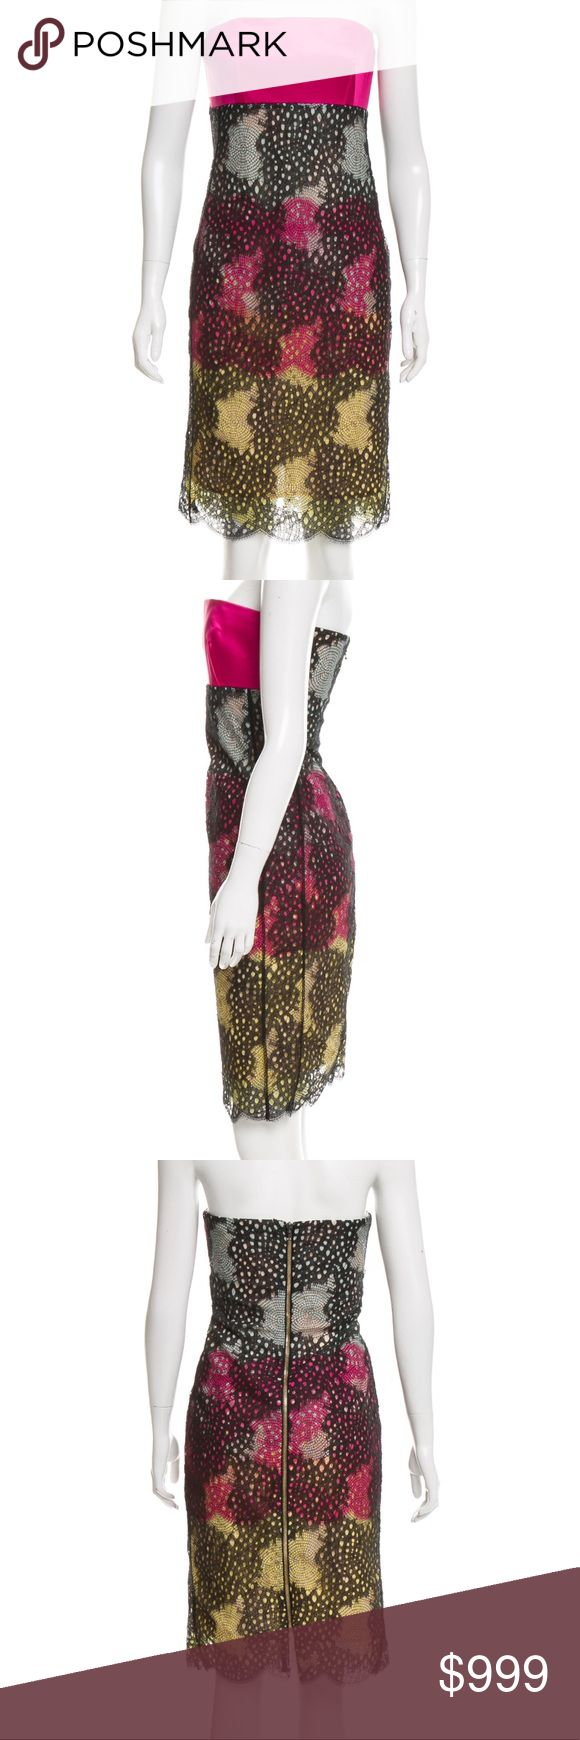 """✨ Roland Mouret Multicolored Strapless Mini Dress Ronald Mouret solid pink bodice with sheer embroidered black overlay with pink and yellow accents. Exposed center back zipper closure, fully lined.   Body: 98% Nylon 2% Spandex  Contrast: 49% Acetate  44% Polyamide  7% Elastane   Lining:  86% Polyamide  14% Elastane   34% Bust 28"""" Waist  36"""" Hips 34"""" Overall Length  New with tags Ronald Mouret Strapless Mini Dress Roland Mouret Dresses Strapless"""